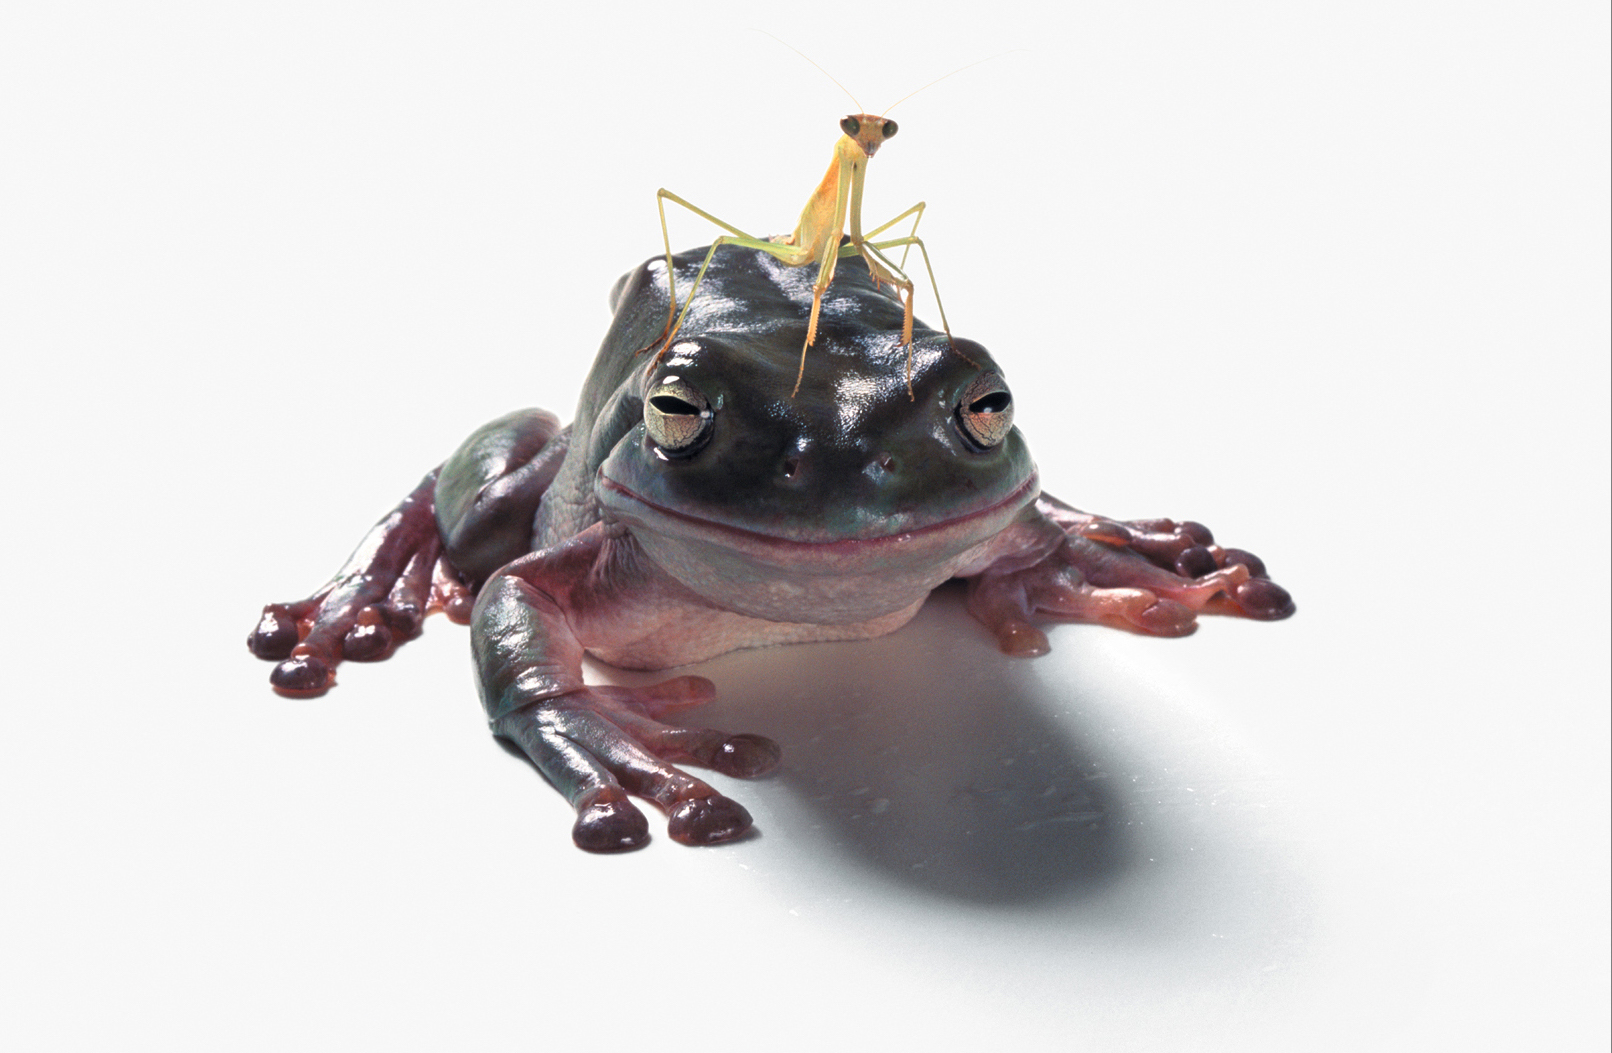 A praying mantis sits on the head of a frog